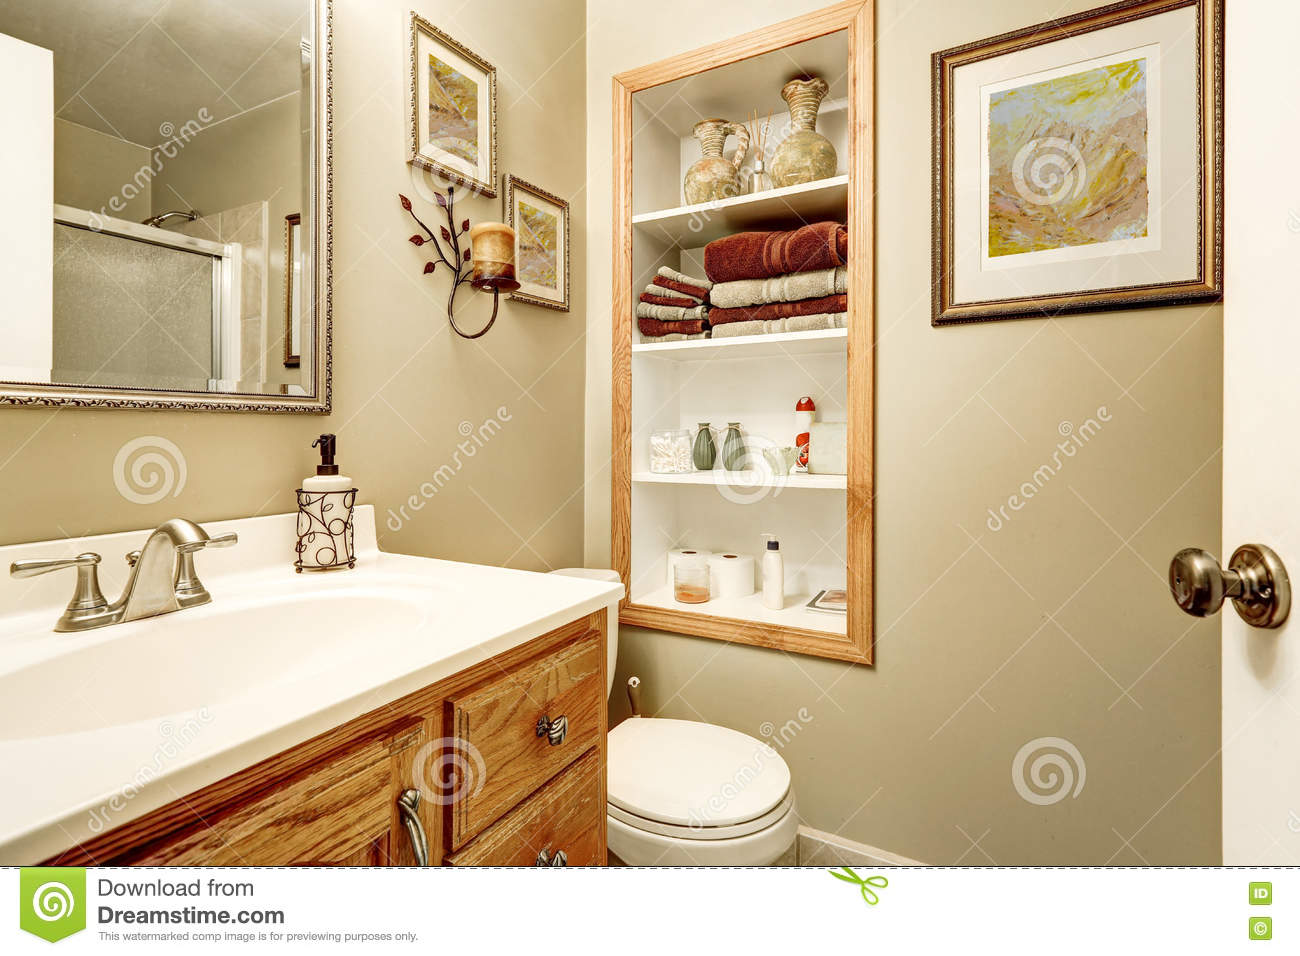 Built In Bathroom Shelves Interior Of Bathroom With Built In Shelves Stock Photo Image Of